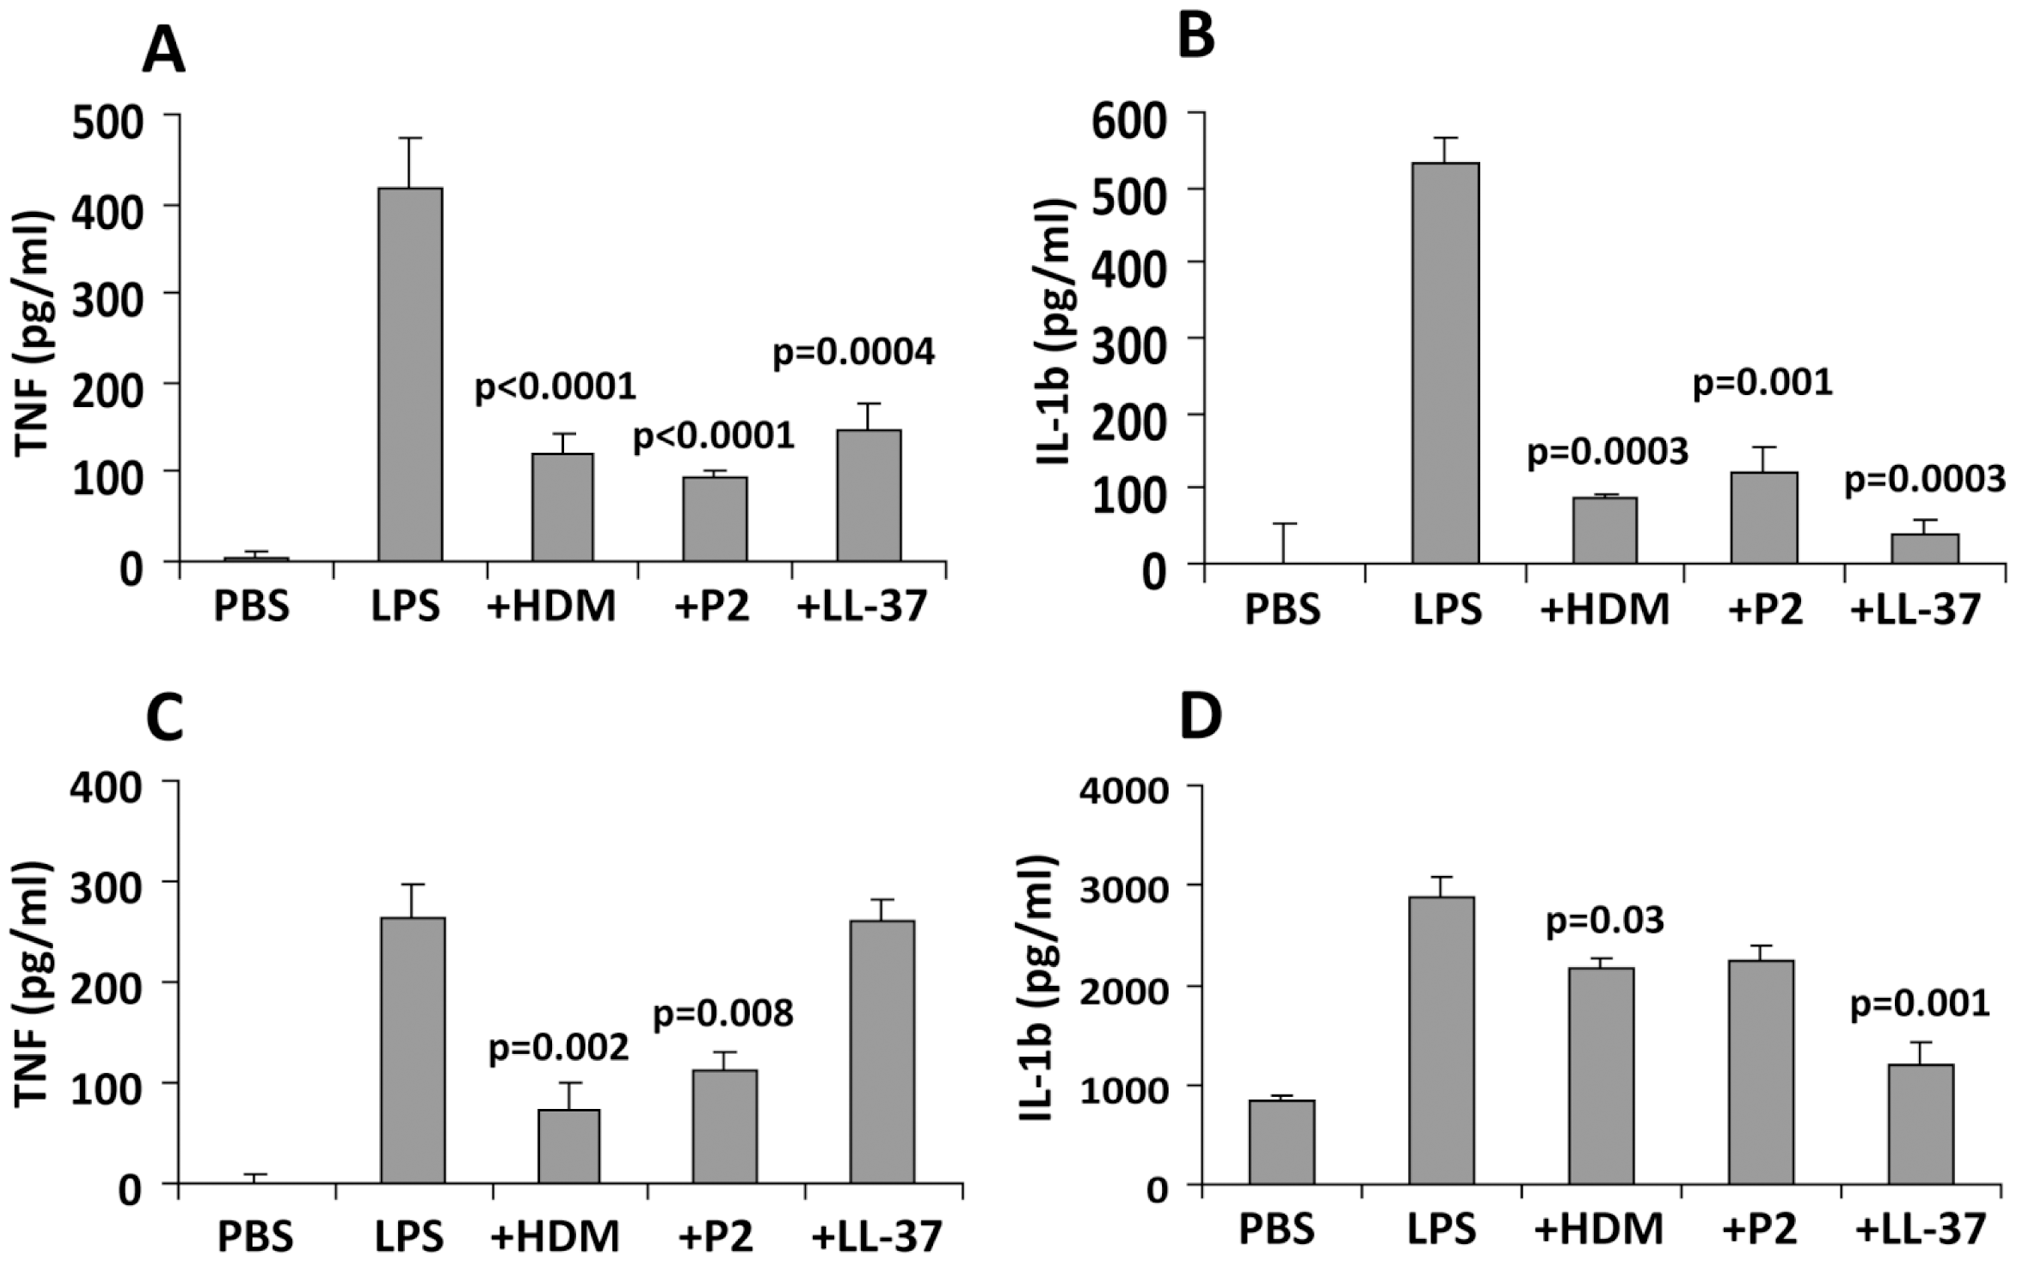 FhHDM-1 protects mice from LPS-induced inflammation.